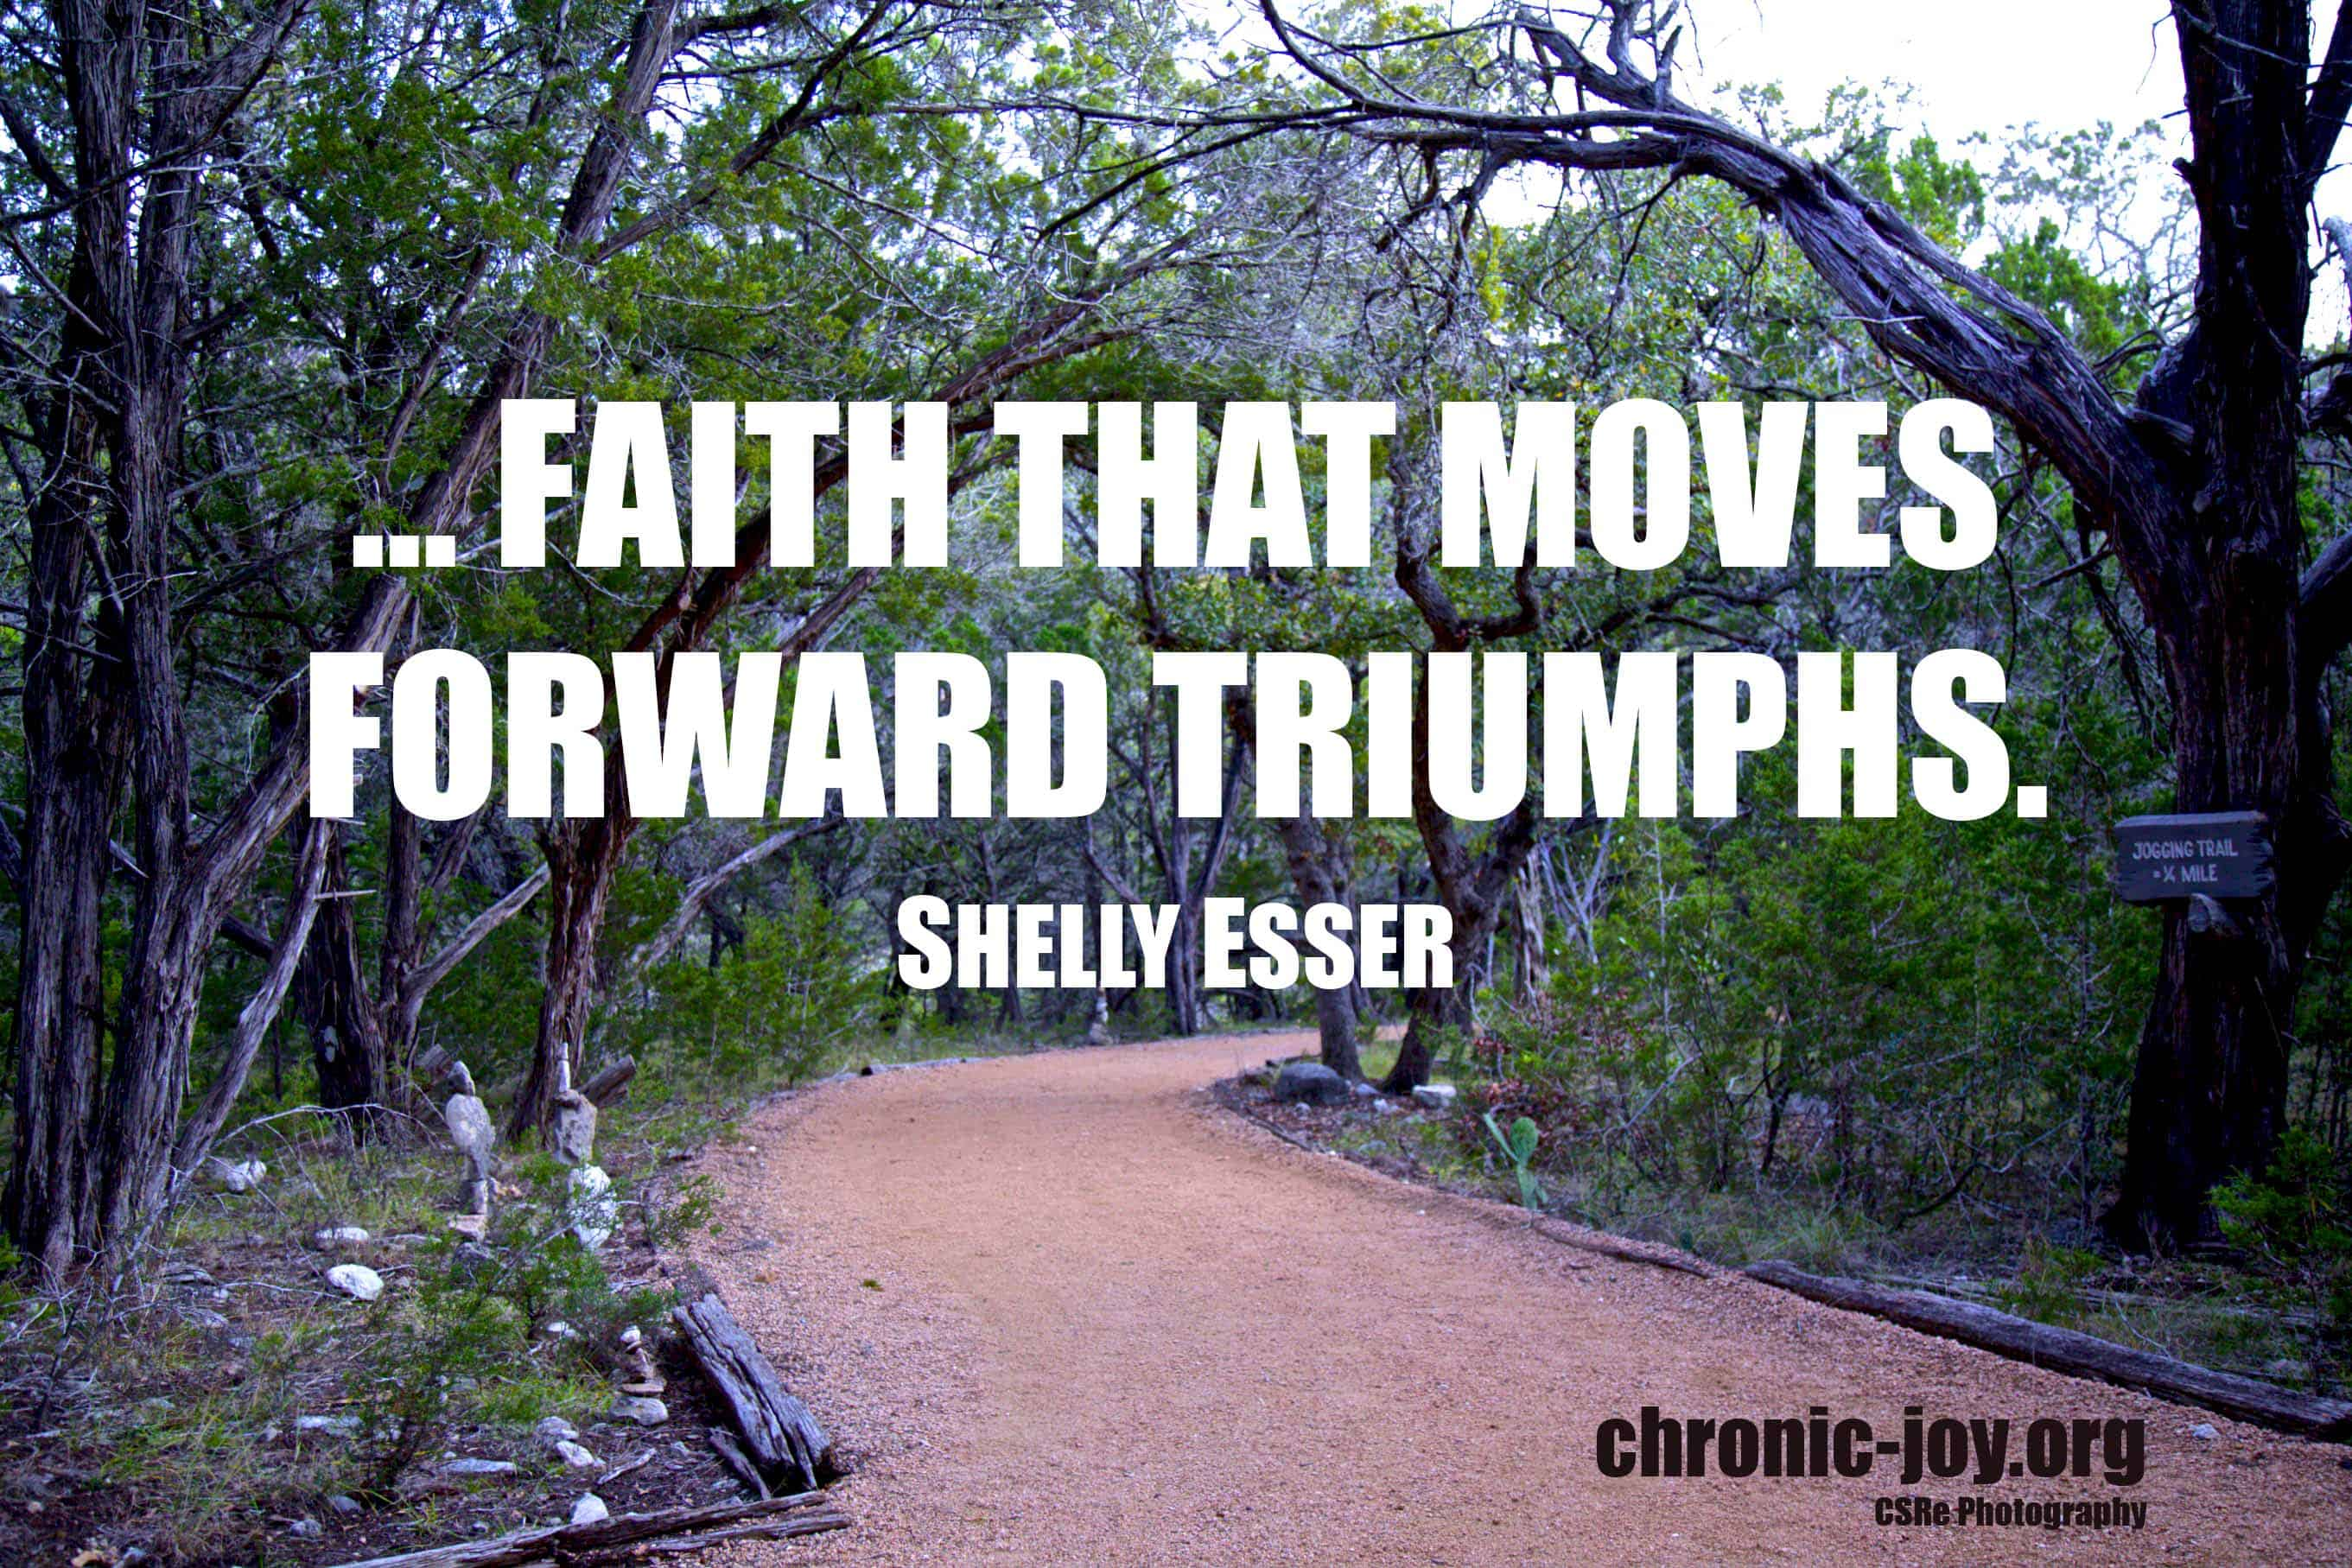 """Living Unoffended Even When Healing Doesn't Come • """"...faith that moves forward triumphs."""" Shelly Esser"""